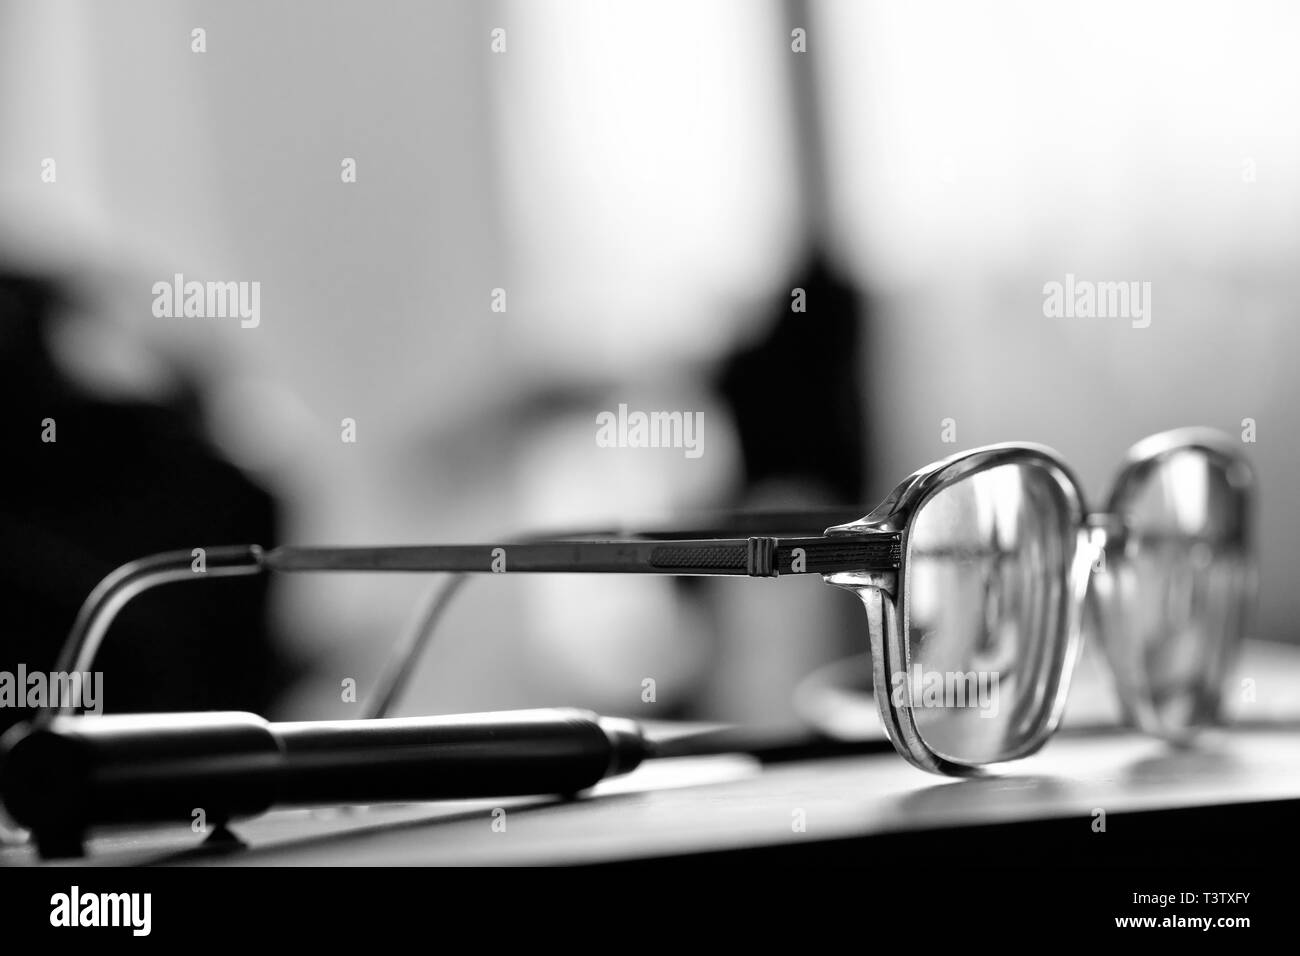 On the Desk. - Stock Image